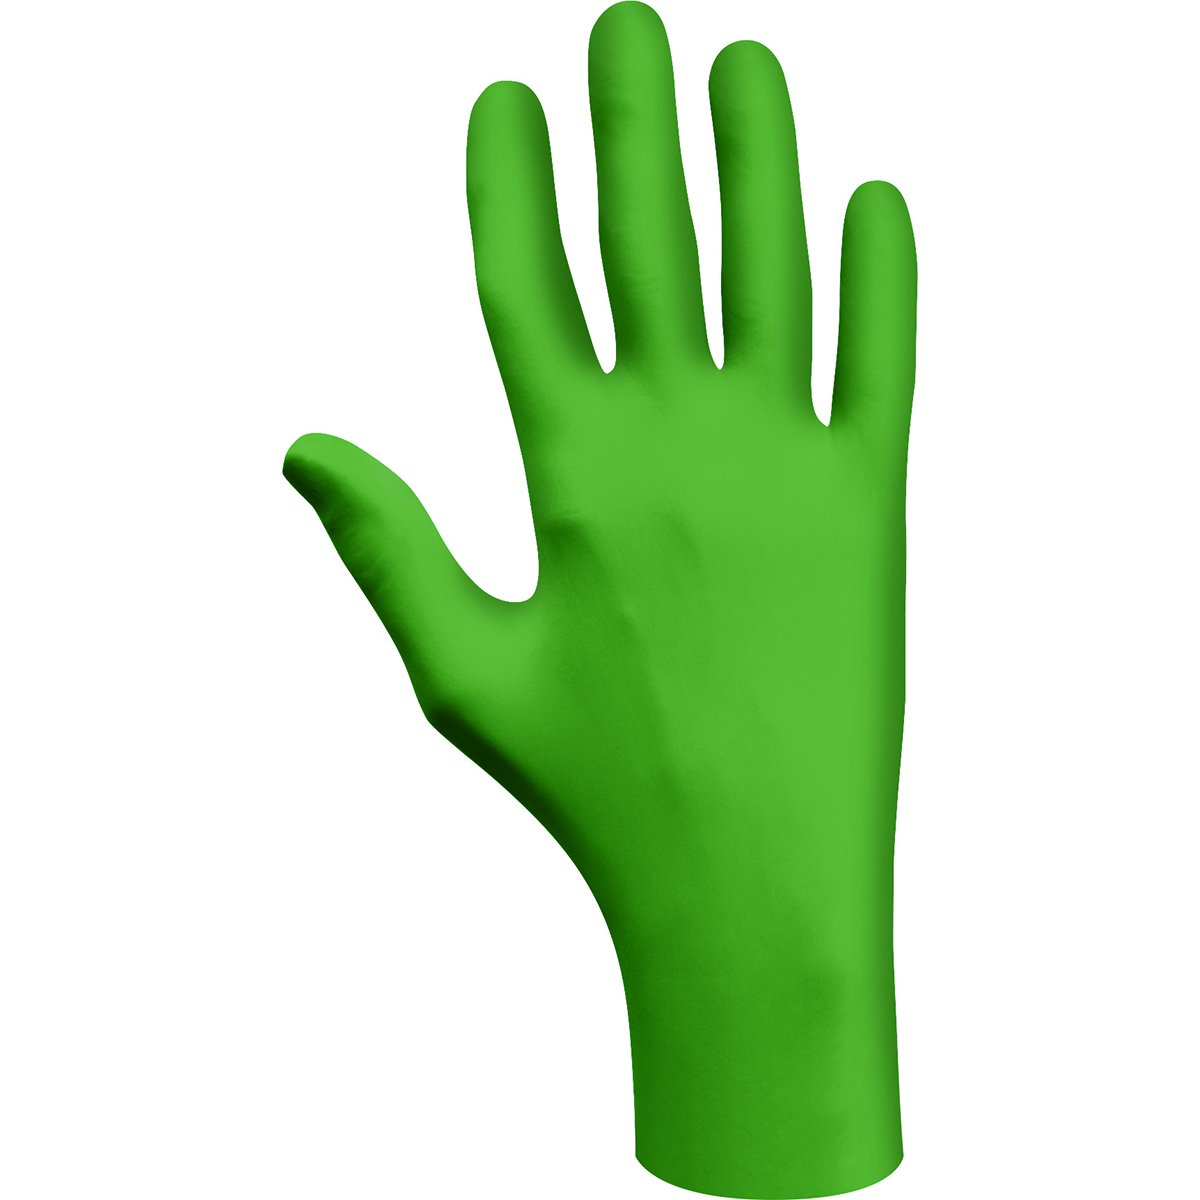 SHOWA 6110PFM GreeN-DEX Biodegradable Industrial Grade Nitrile Glove, Disposable, Powder-Free, 4 mil Thickness (1 box)